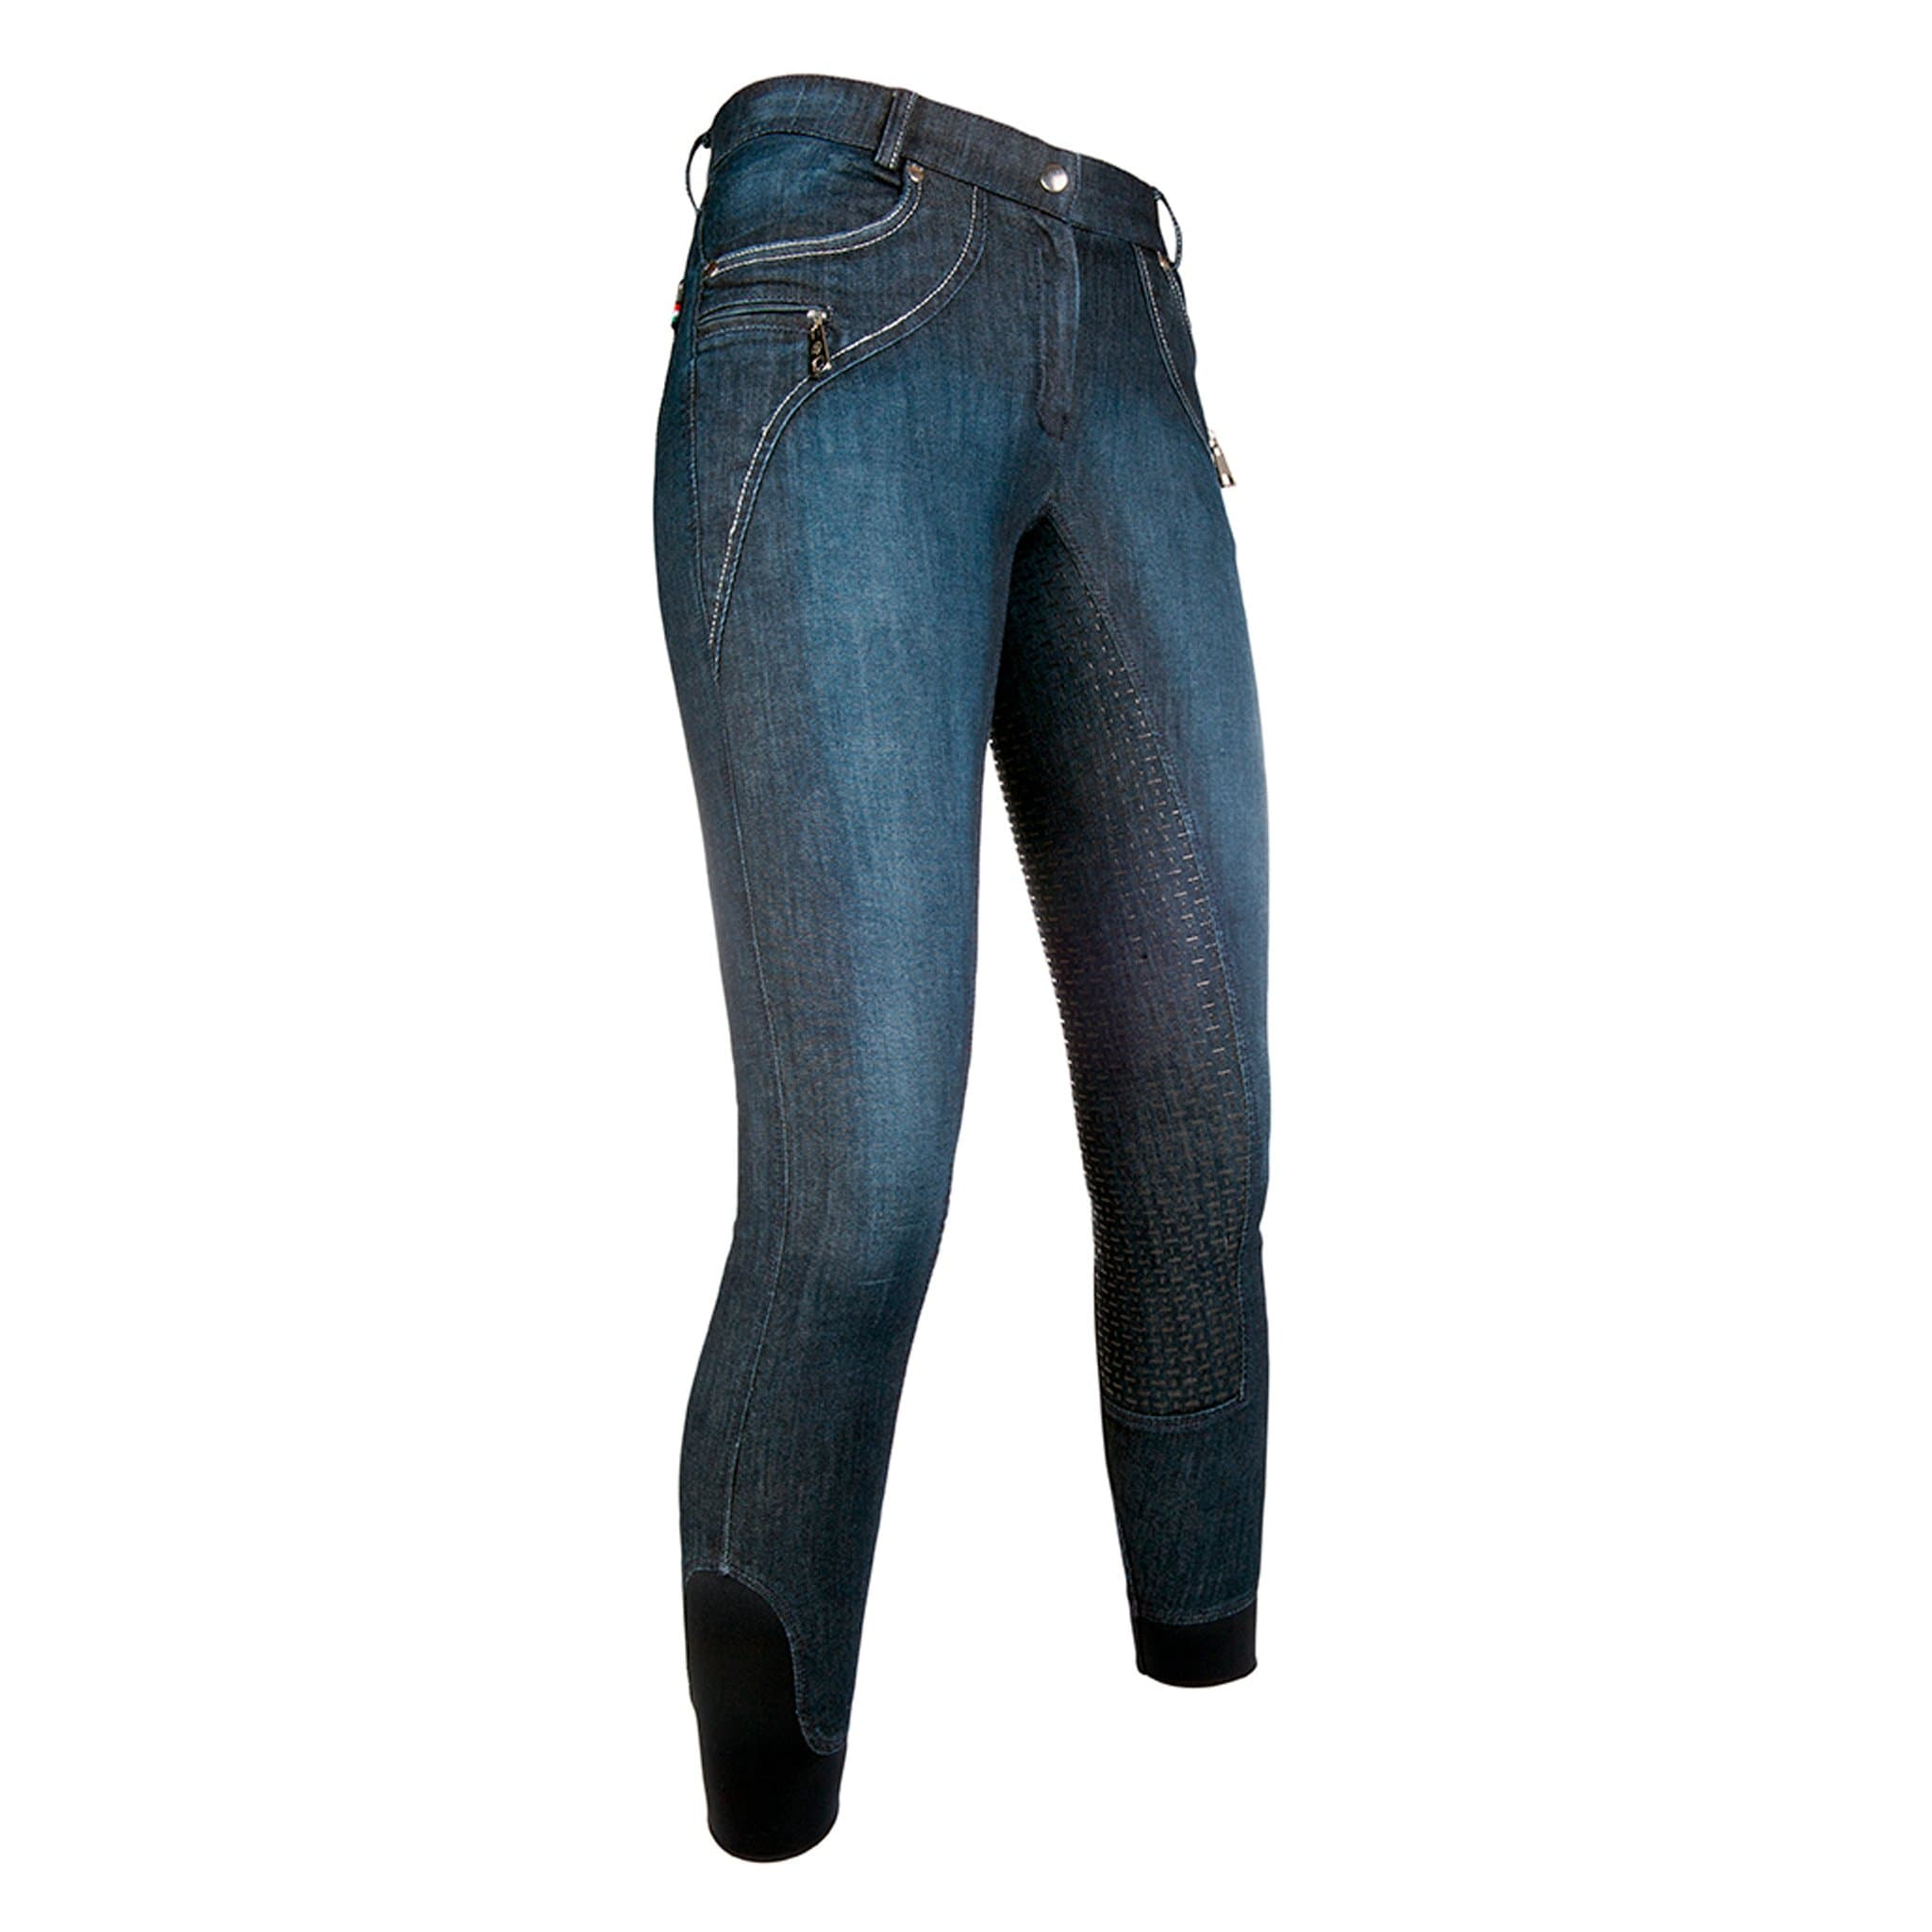 HKM Lauria Garrelli Limoni Denim Silicone Full Seat Breeches 10976 Front Right